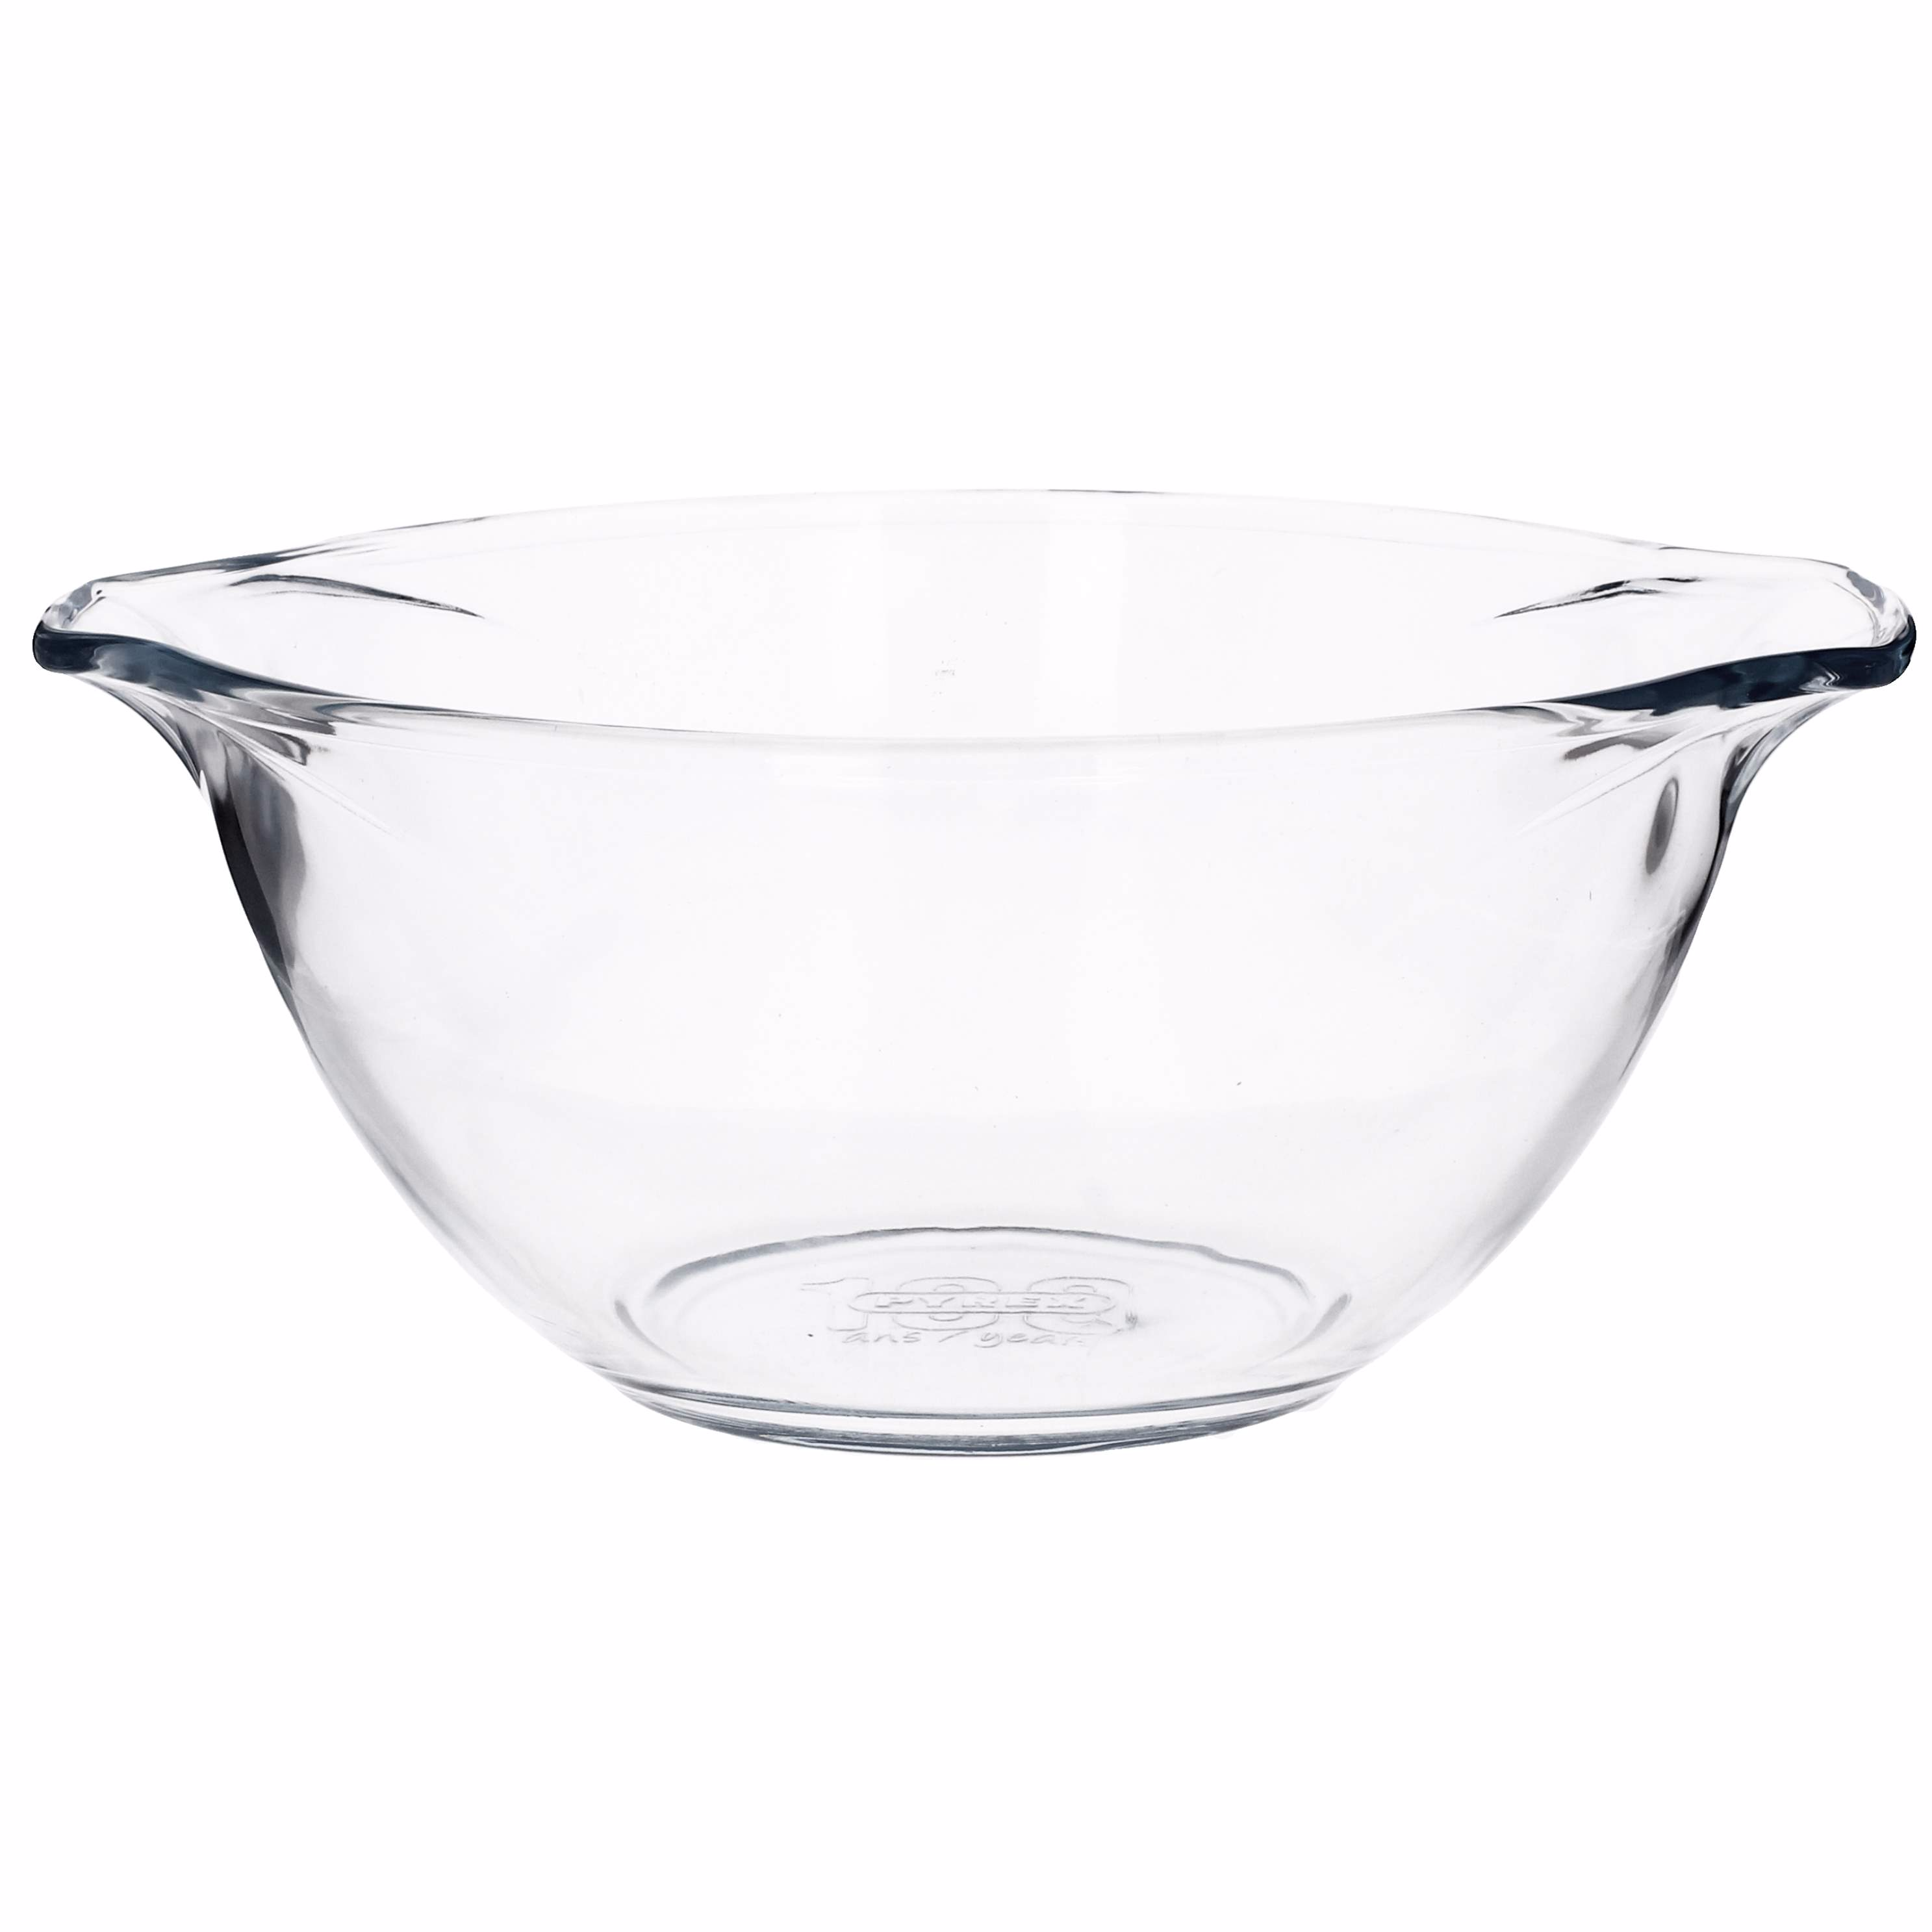 Miska / Salaterka szklana PYREX COLLECTOR EDITION 2,5 l